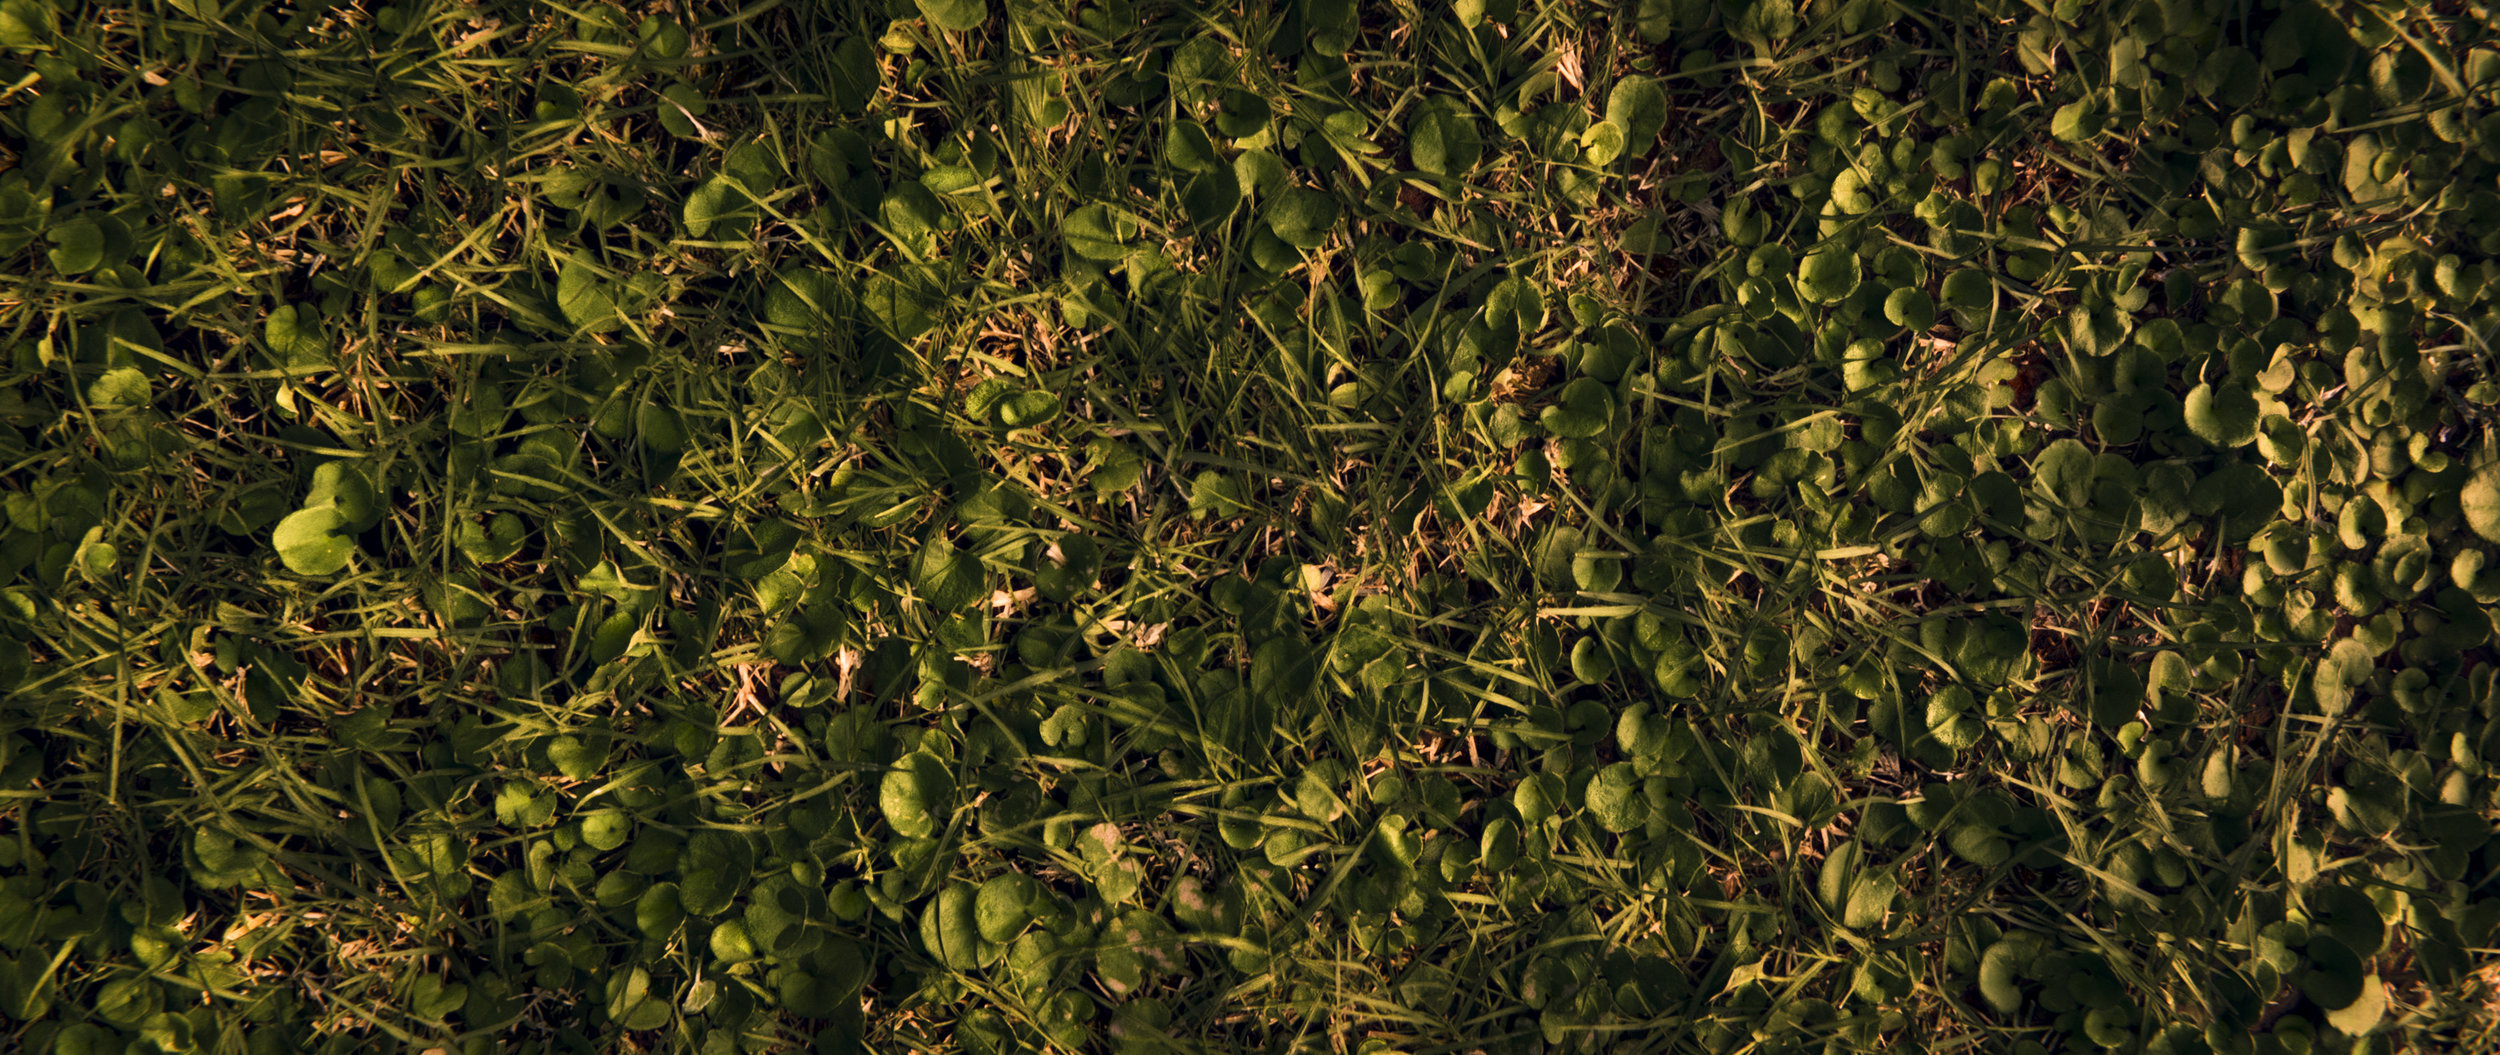 Grass with clovers at sunrise